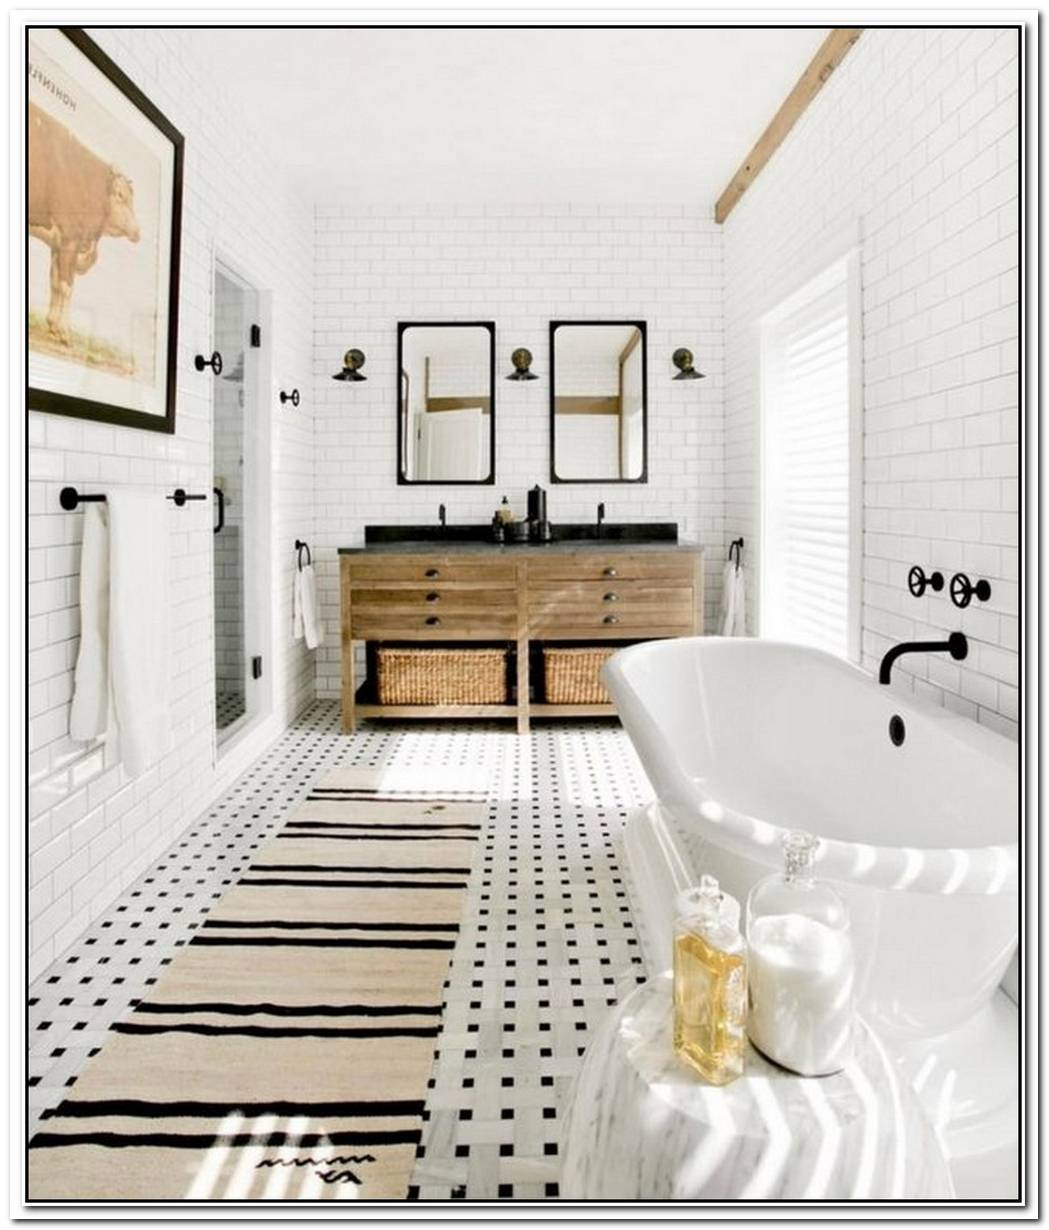 Outfit Your Bathroom With Black Hardware To Give It A Cool Sophistication